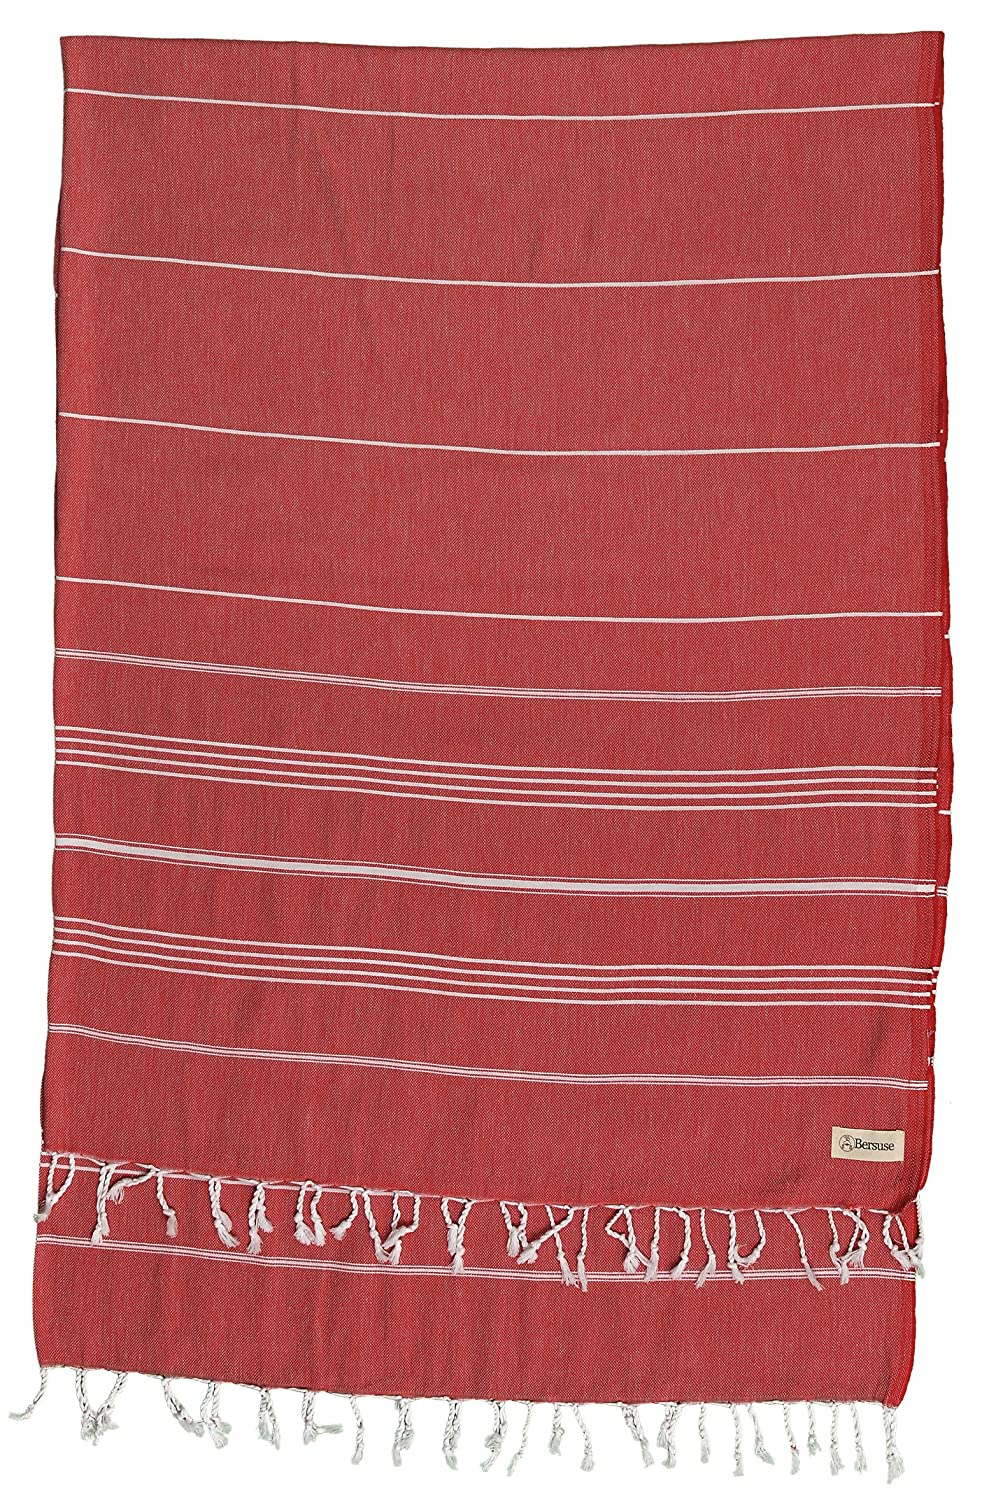 Bersuse 100% Cotton - Anatolia XL Blanket Turkish Towel - 61X82 Inches, White Bersuse